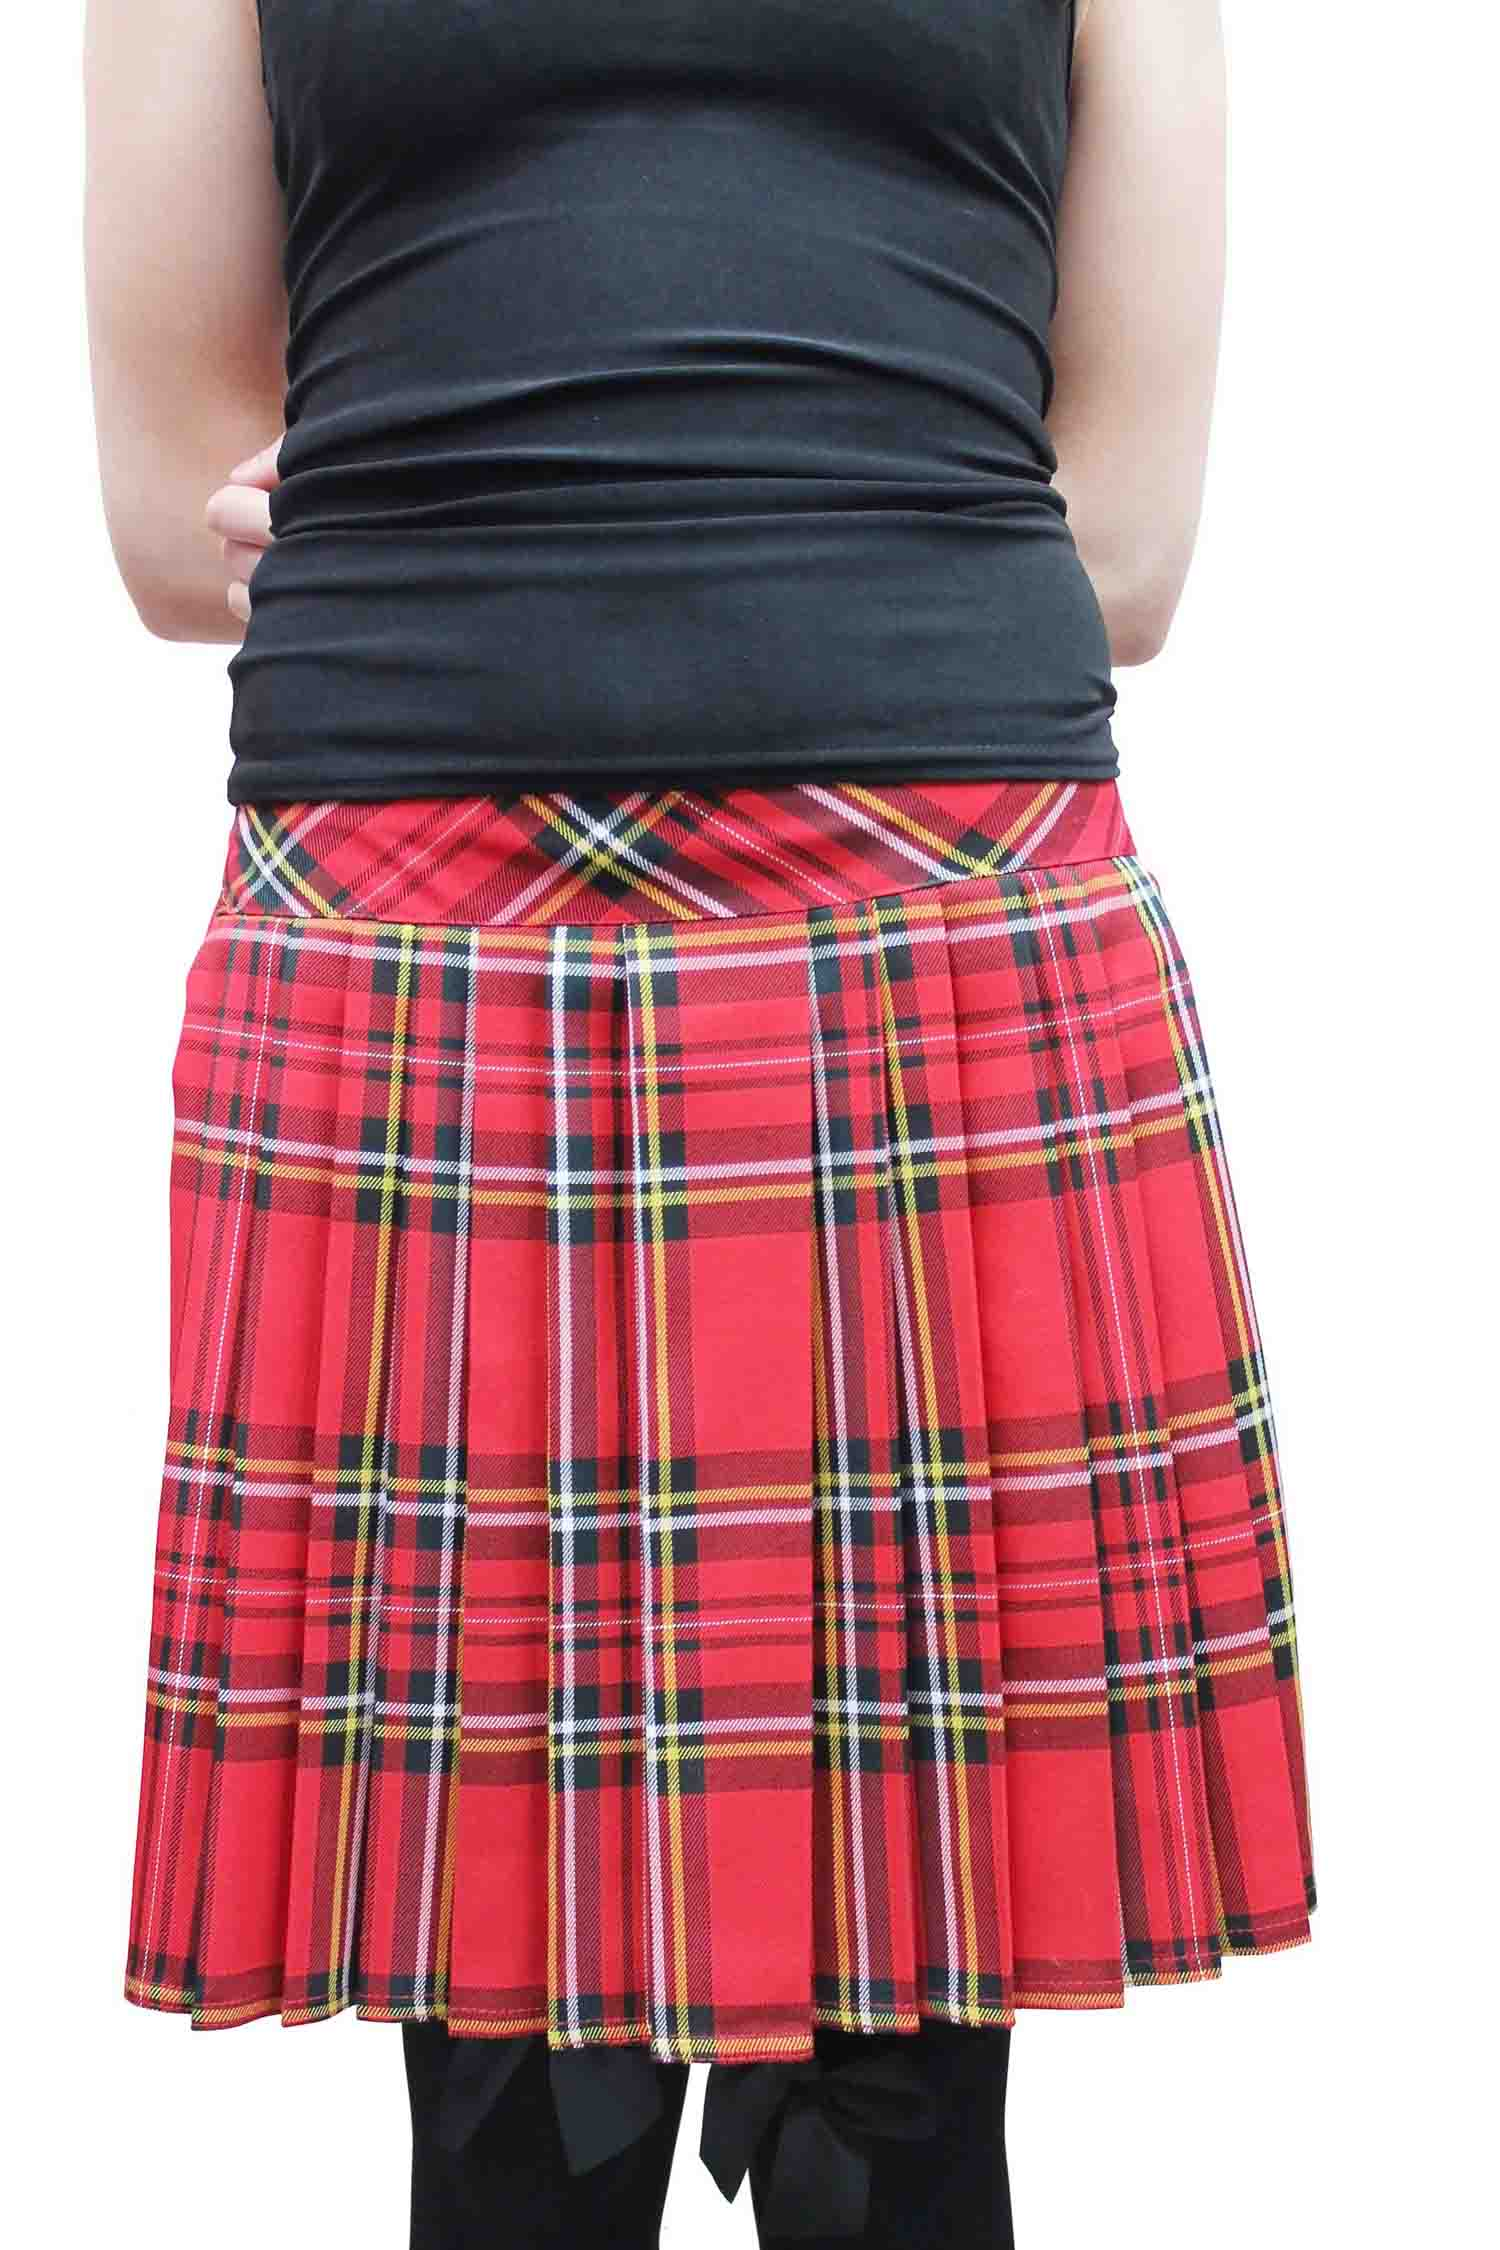 Sep 23,  · Royal Bones By Tripp Red Plaid Skirt is rated out of 5 by Rated 5 out of 5 by DoodlePuff from Very cute! It's the perfect length; not too short, not too long/5(69).